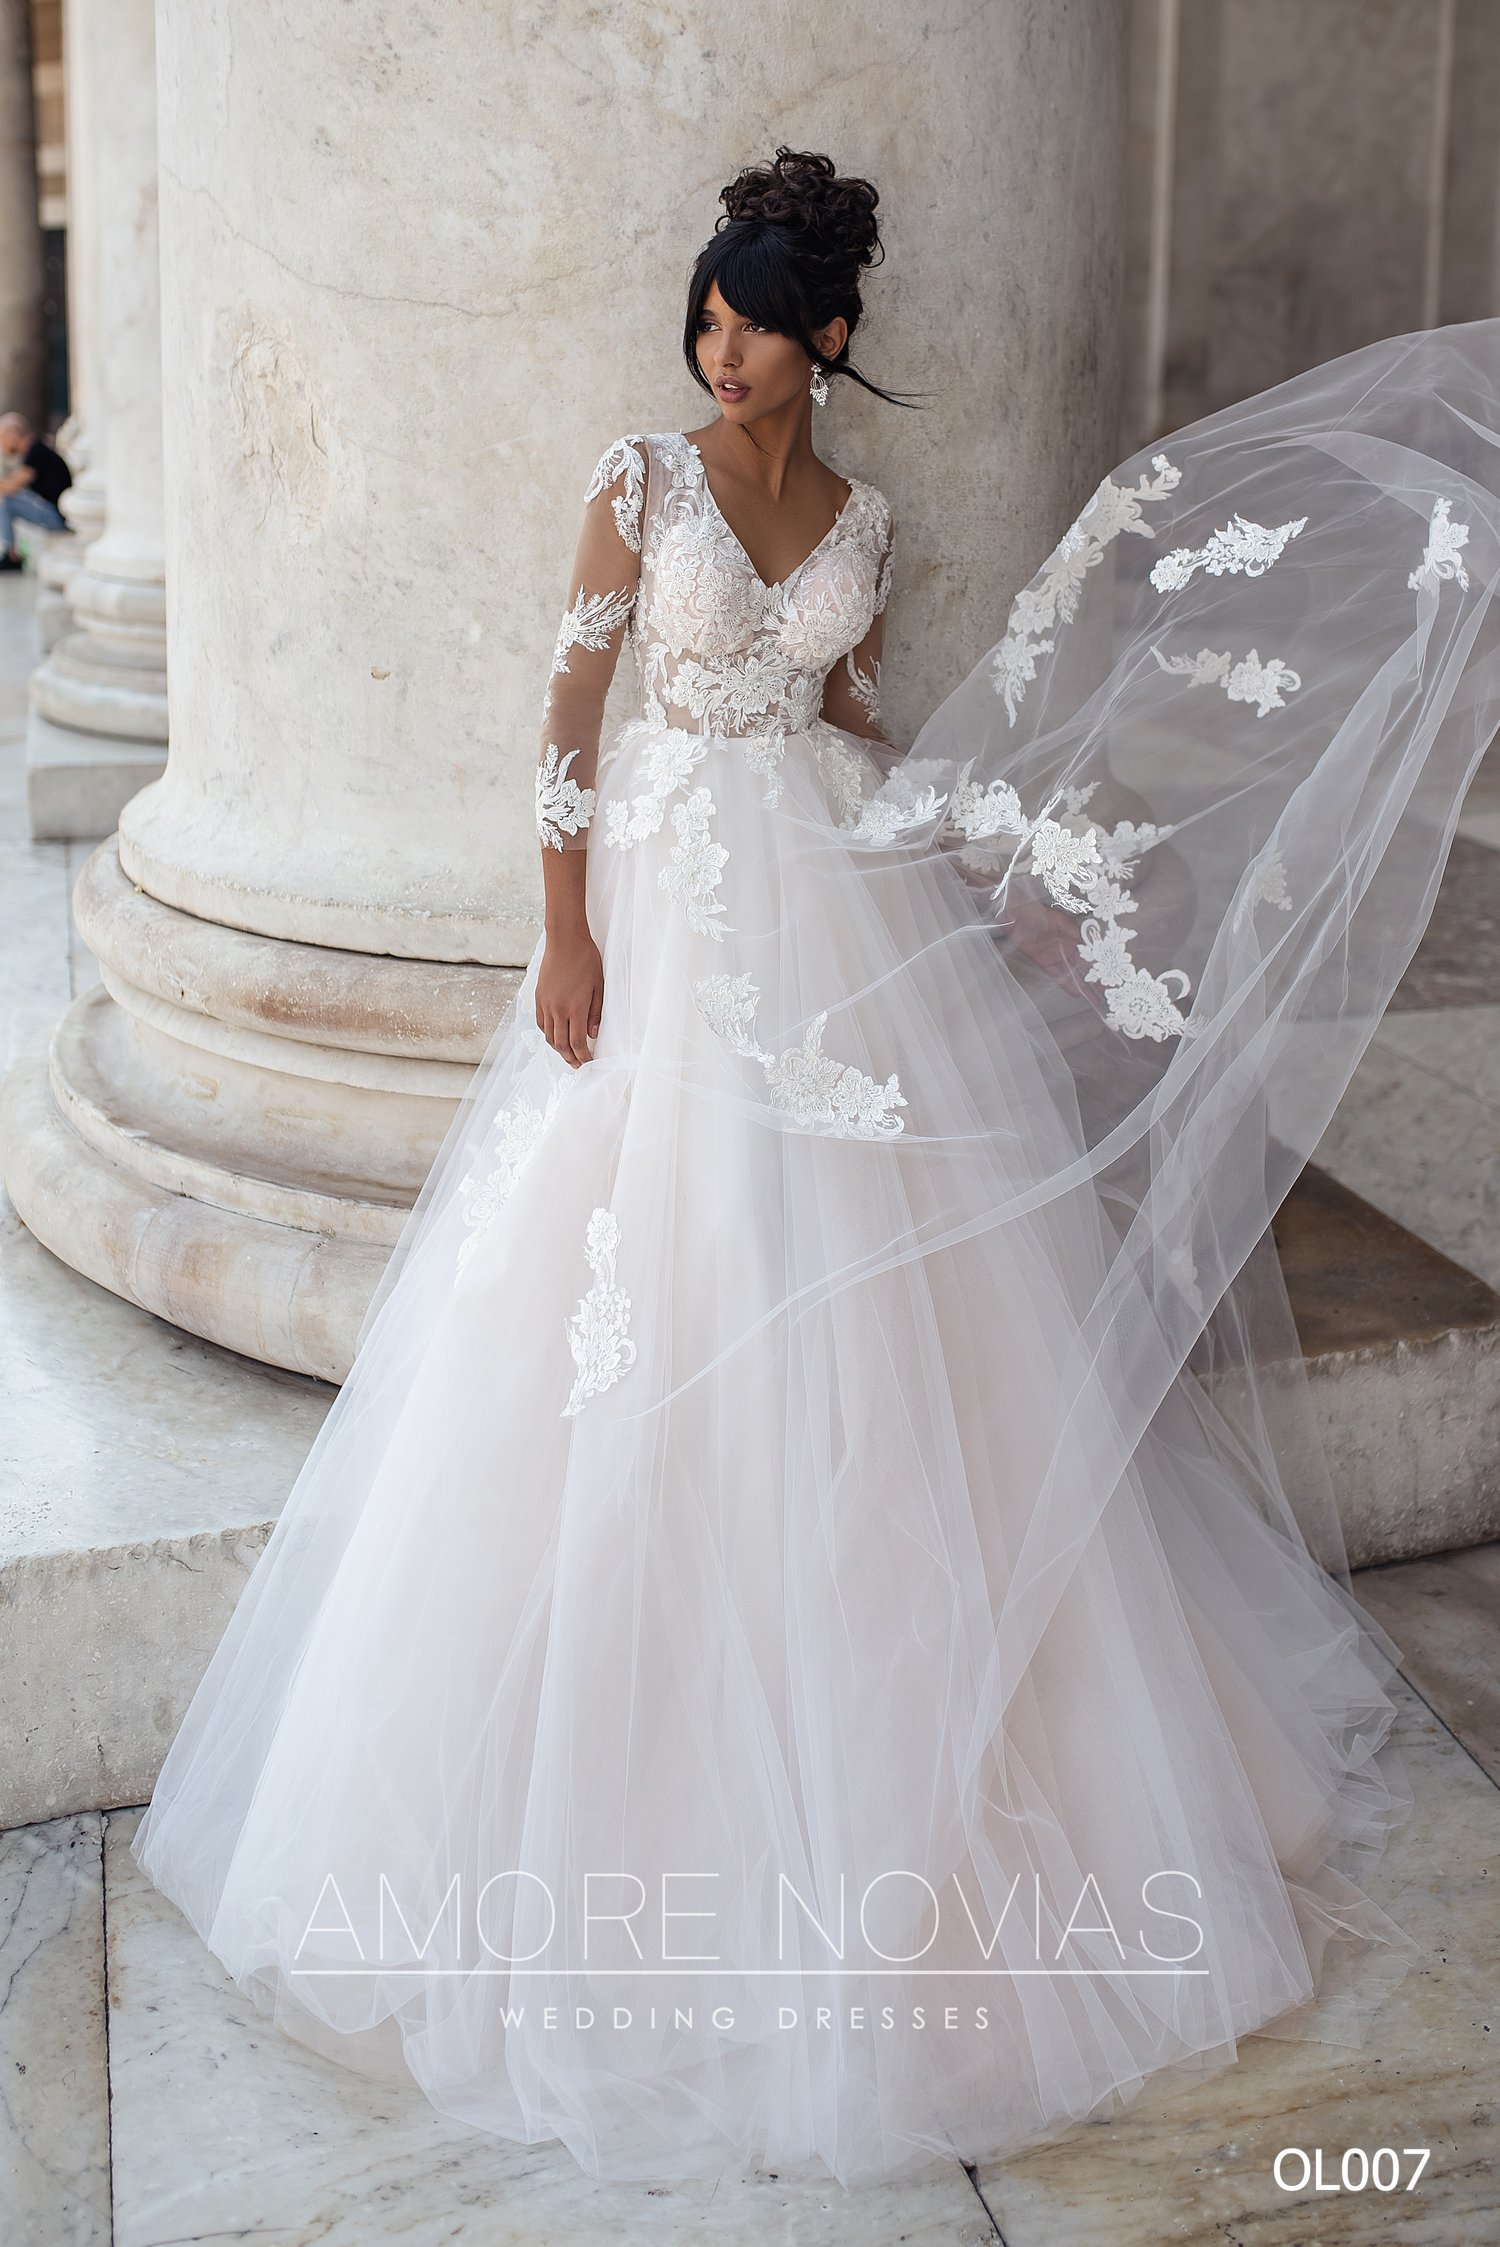 http://amore-novias.com/images/stories/virtuemart/product/OL007       (1).jpg